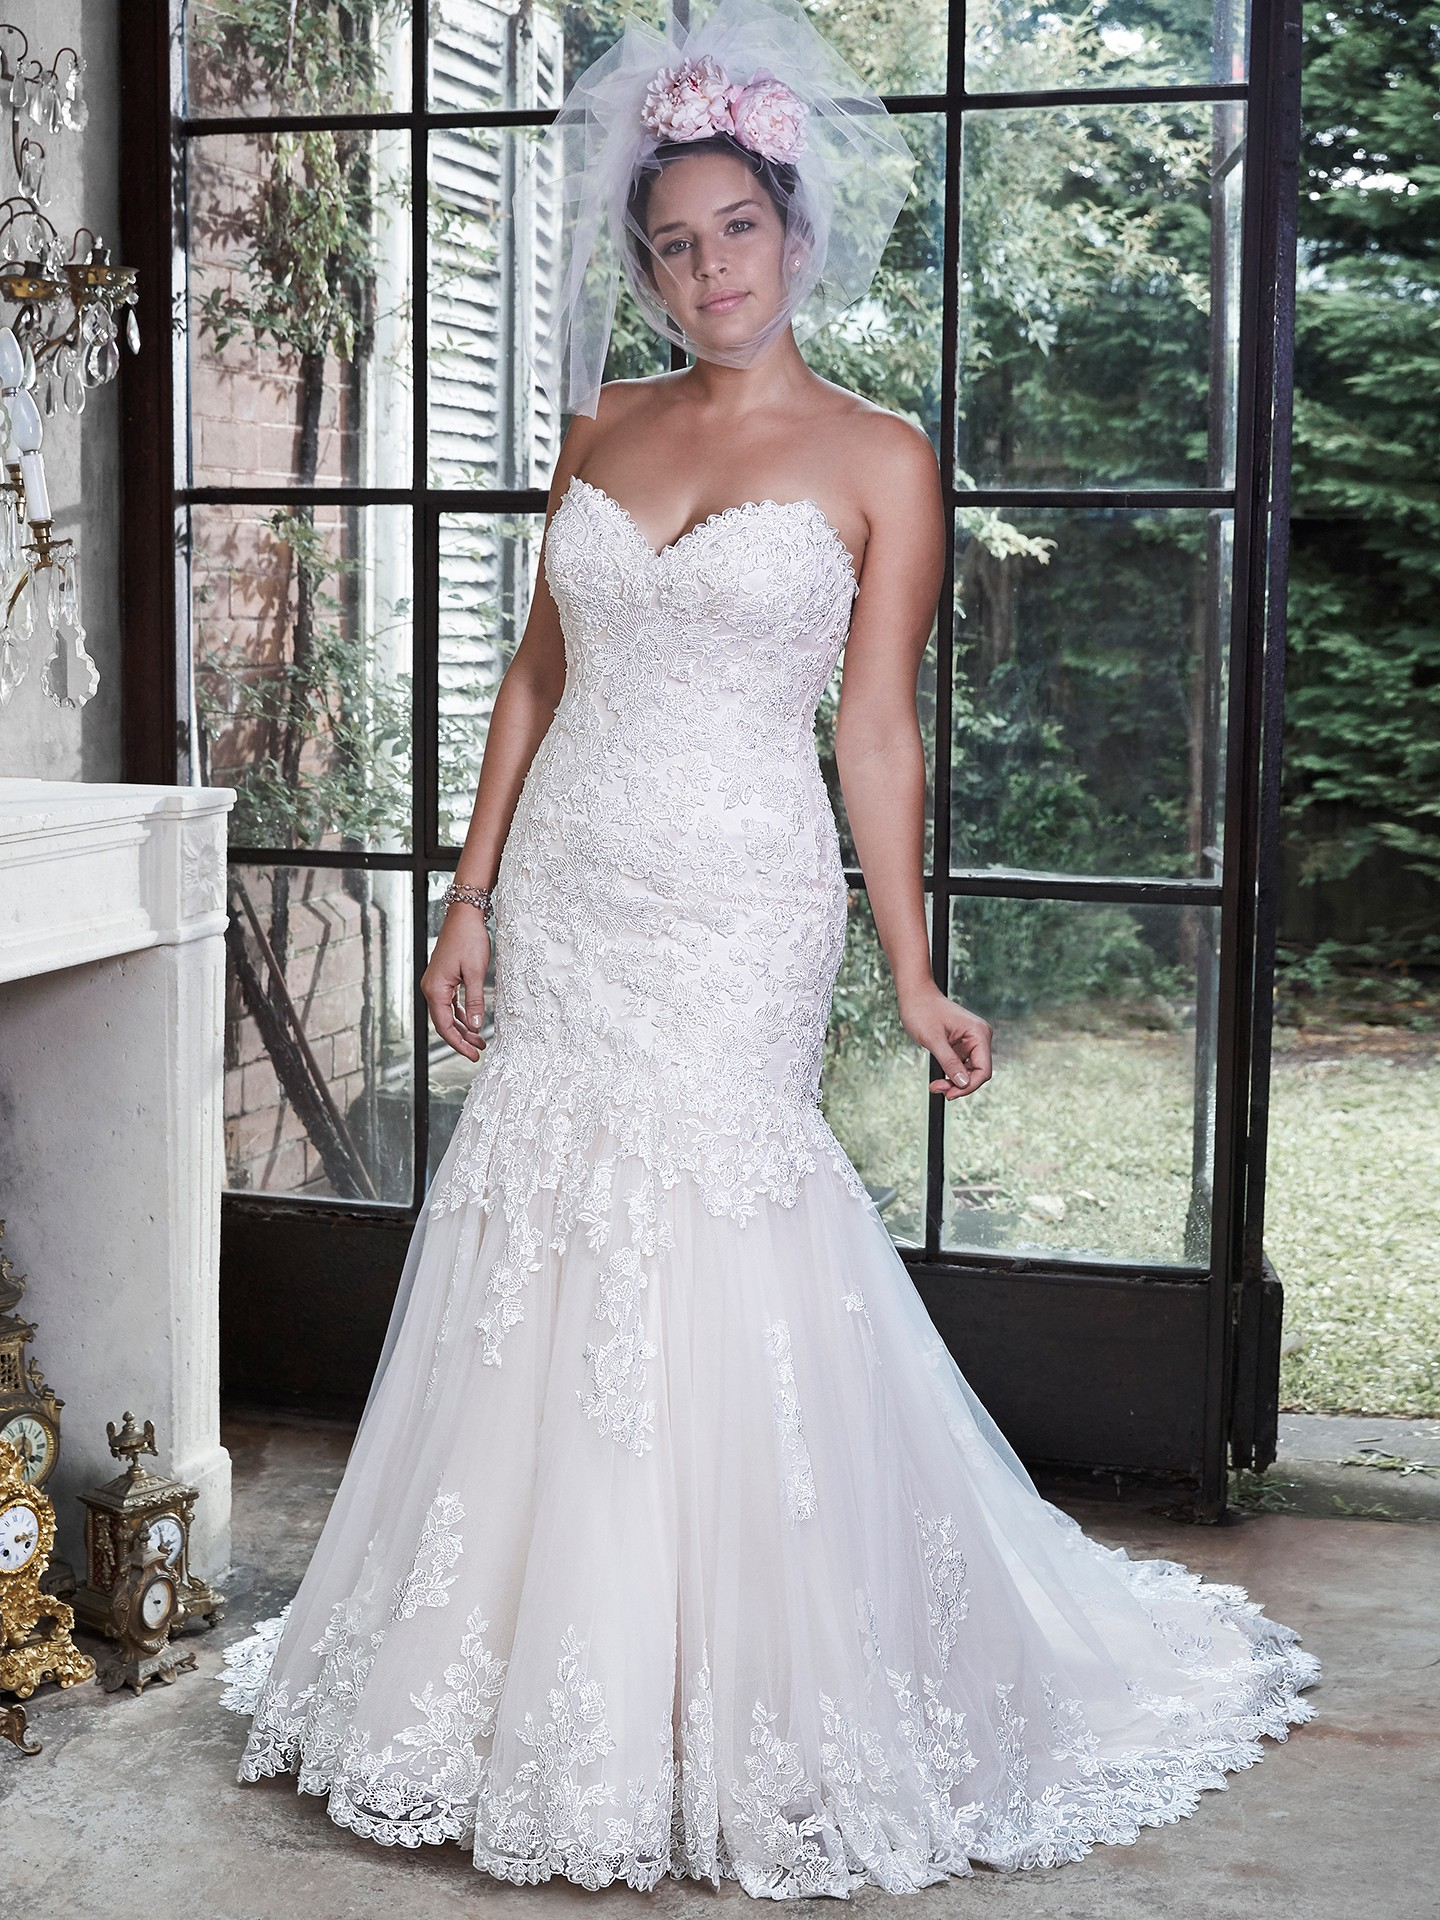 Even More Blush Wedding Dresses by Maggie Sottero : Love Maggie